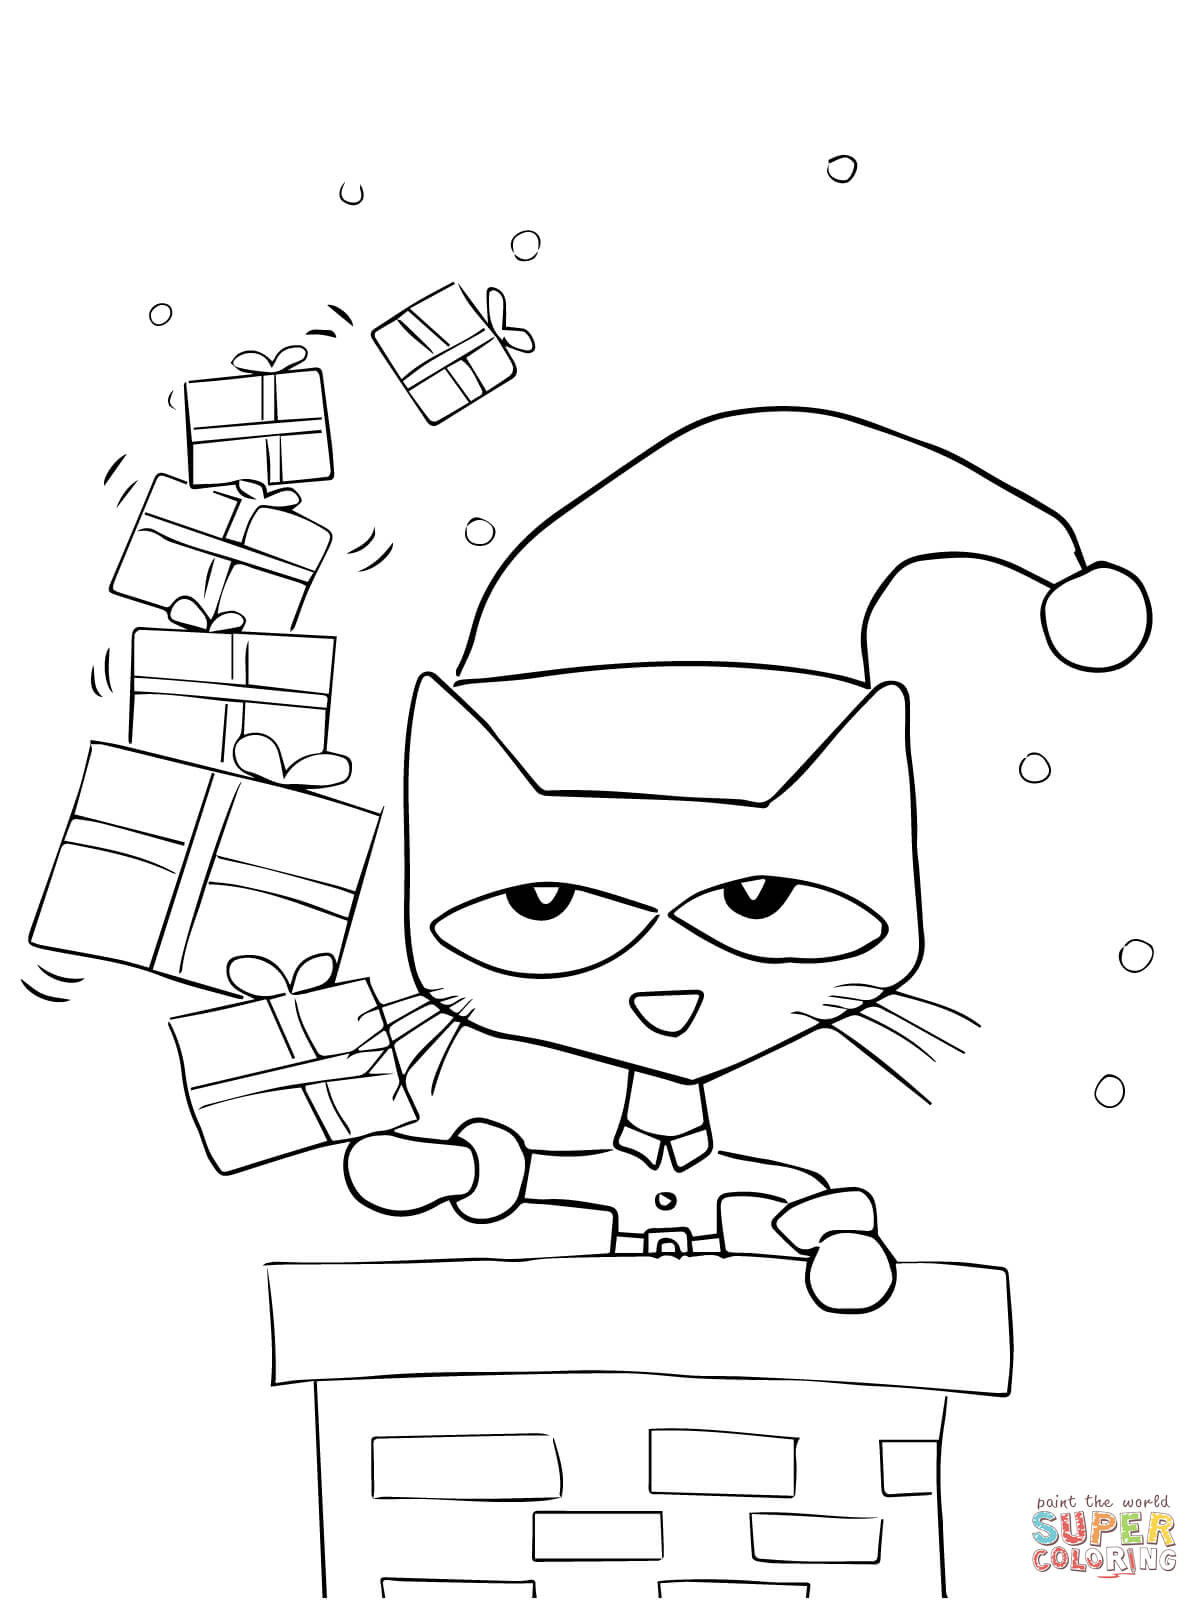 Printable Christmas Cat Coloring Pages With Category All Categories 9 Frabbi Me